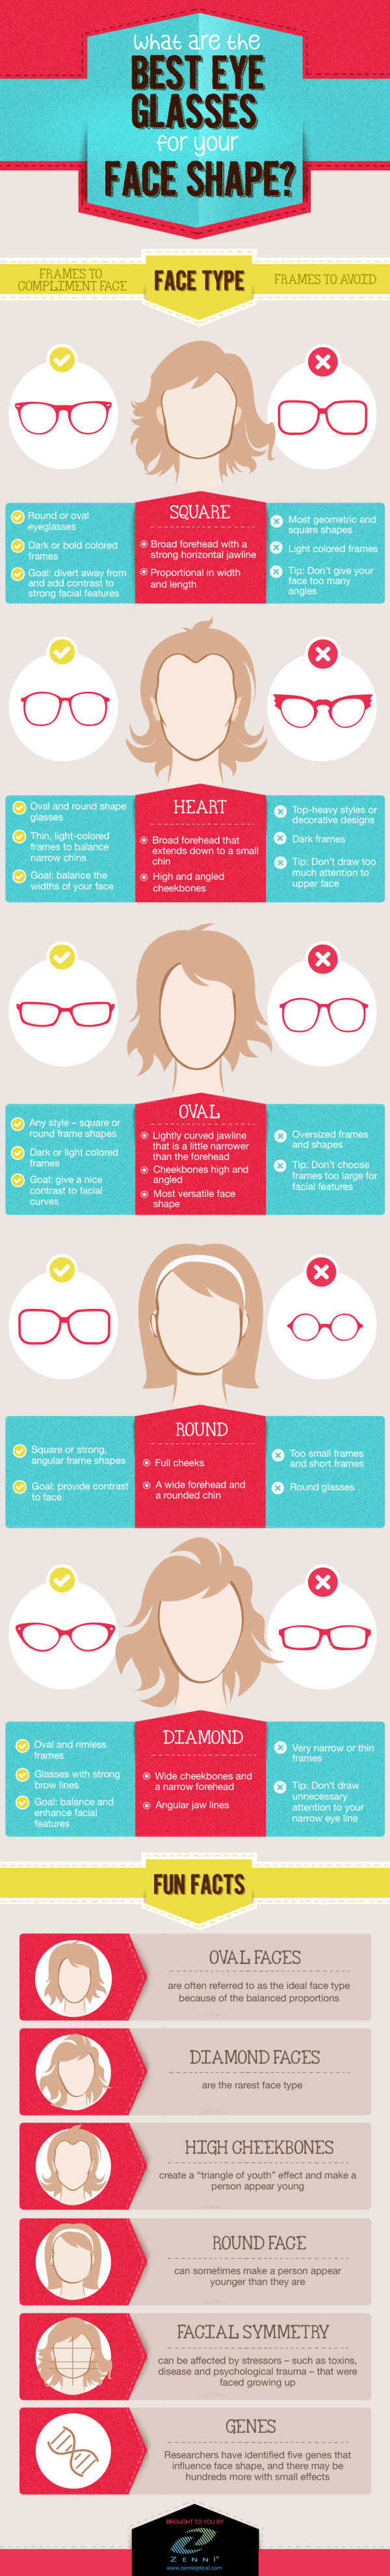 What are the Best Eyeglasses for Your Face Shape? infographic